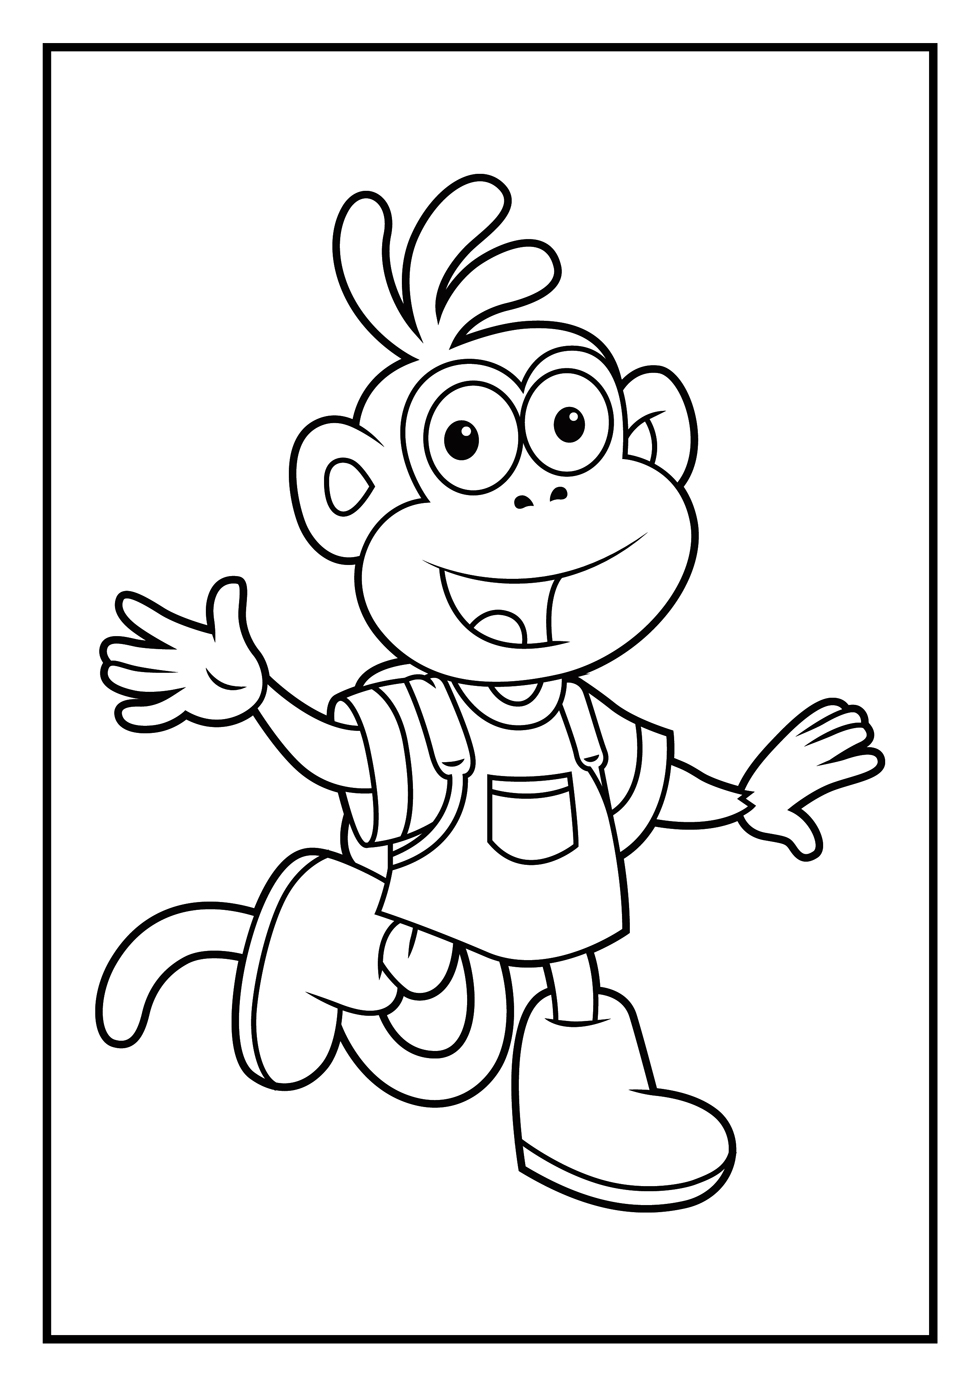 Boots Colouring Pages